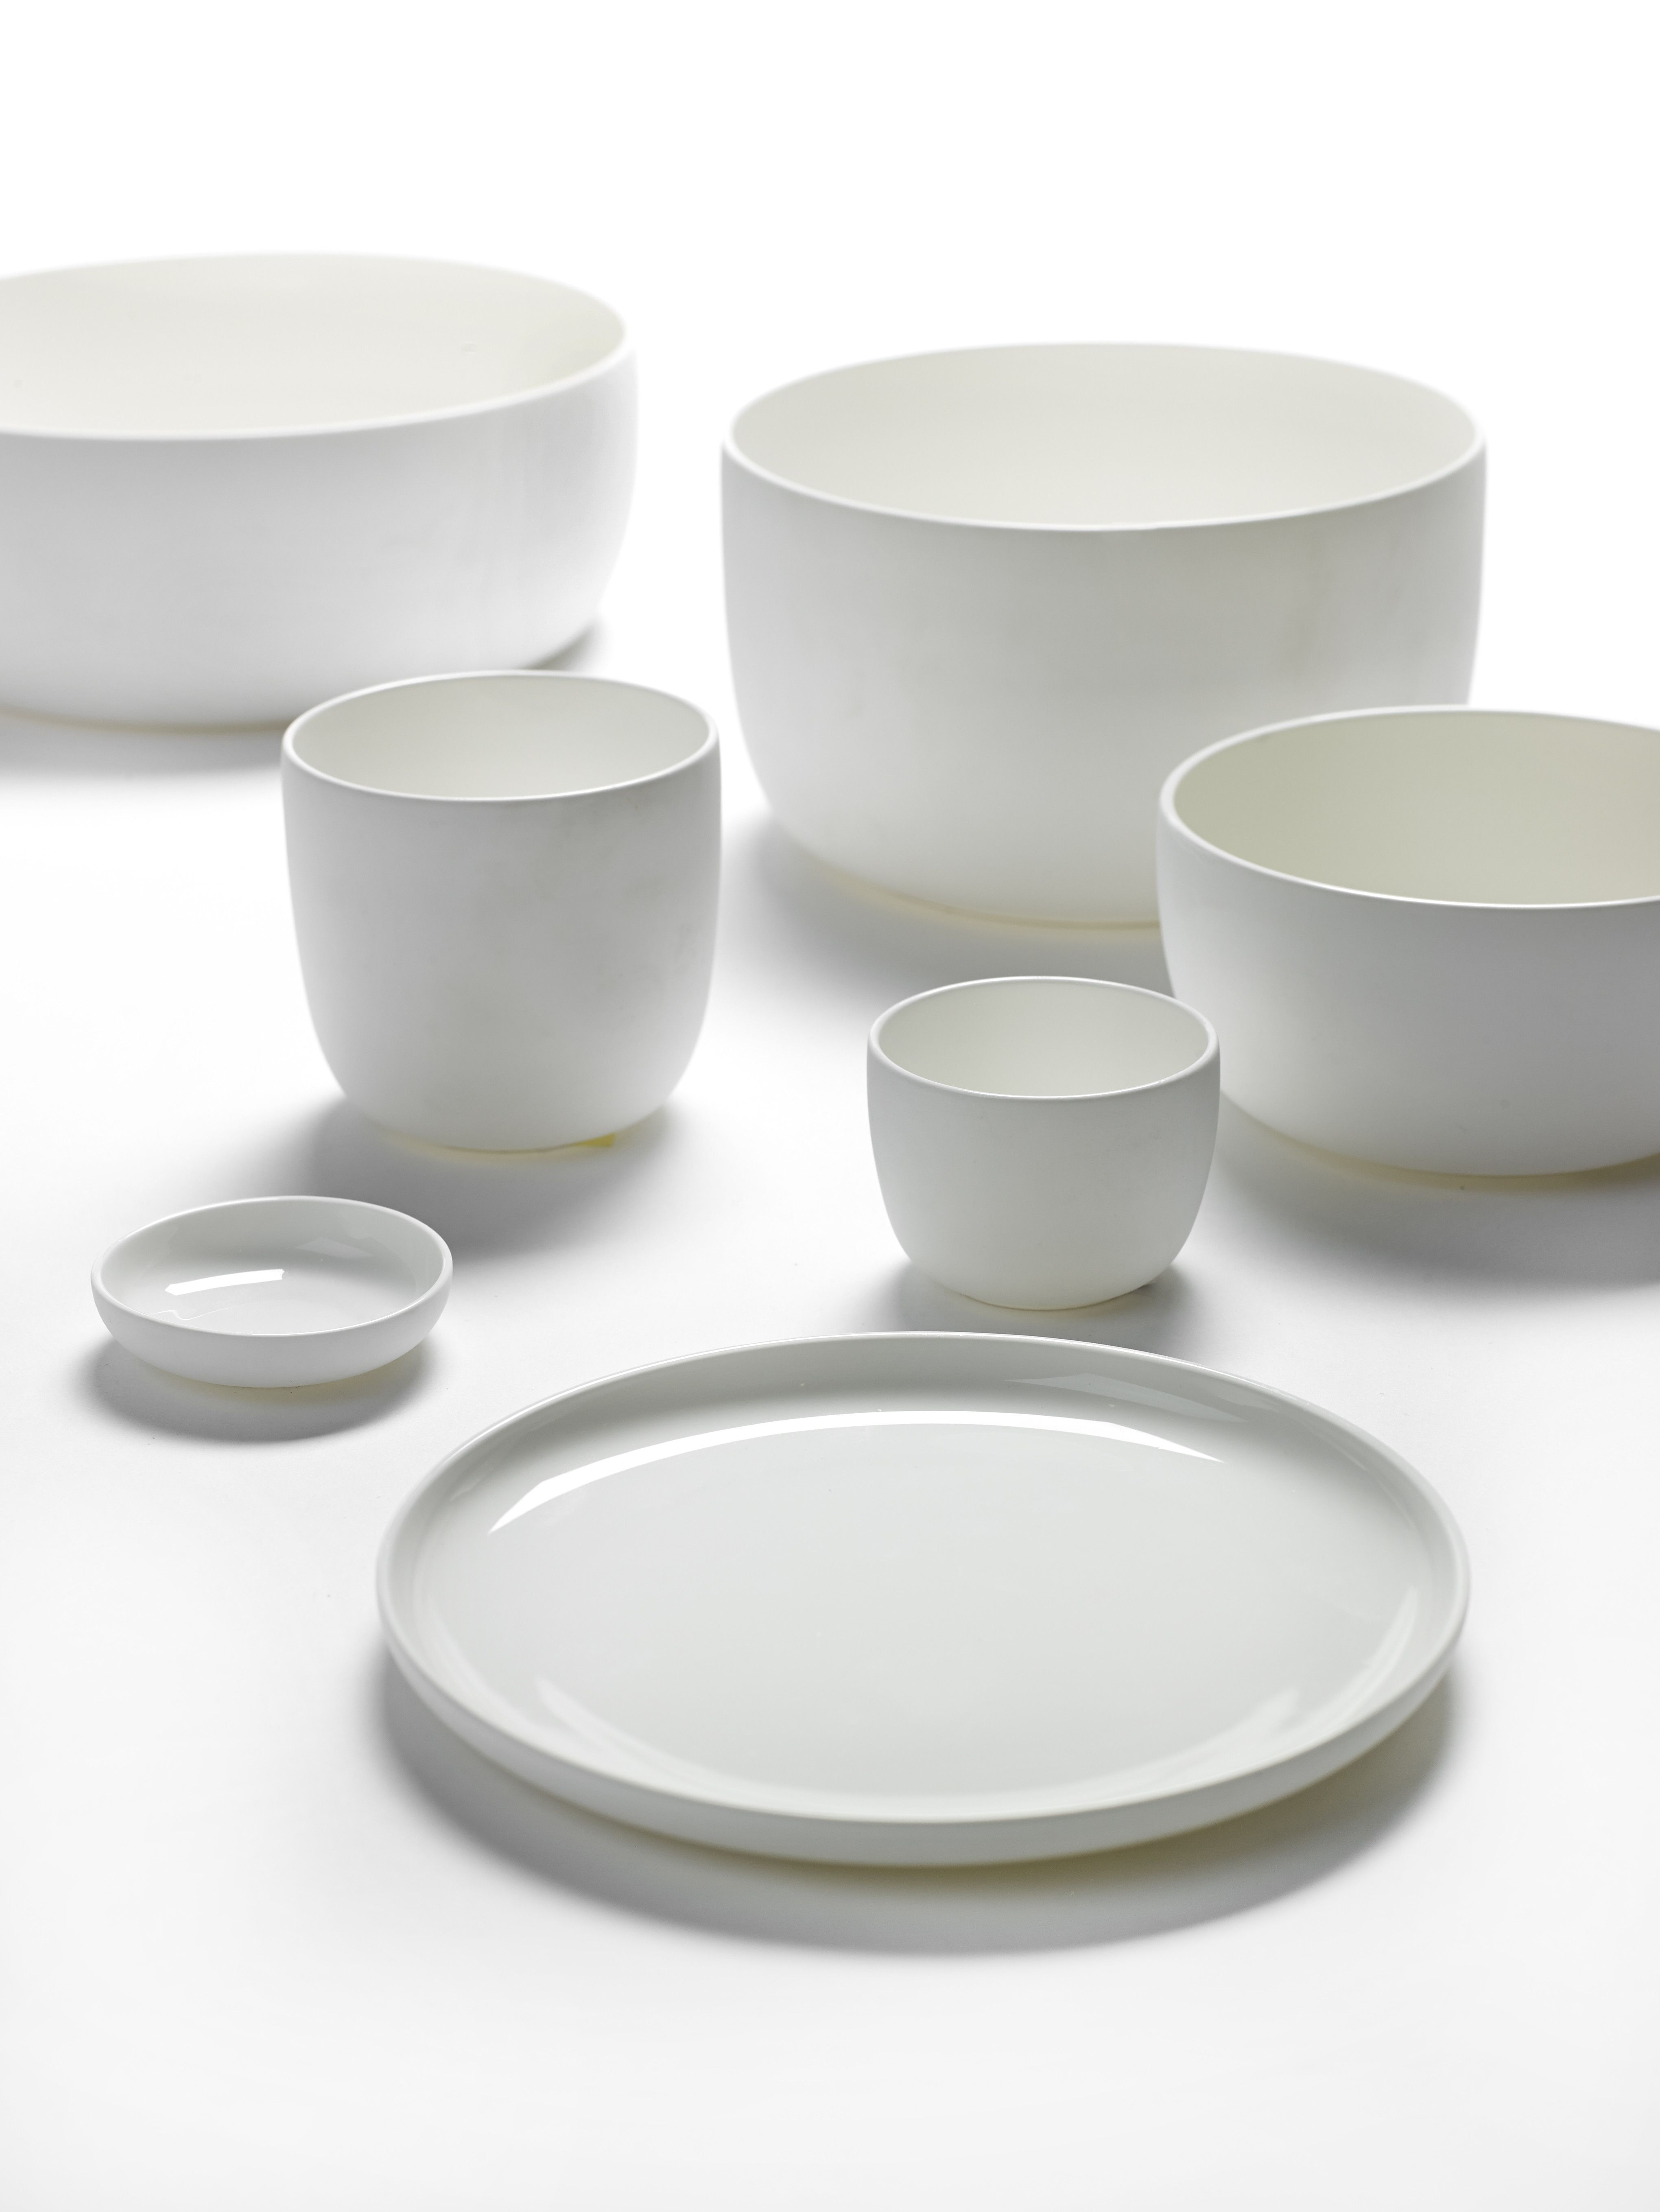 piet boon white tableware from piet boon by serax. Black Bedroom Furniture Sets. Home Design Ideas